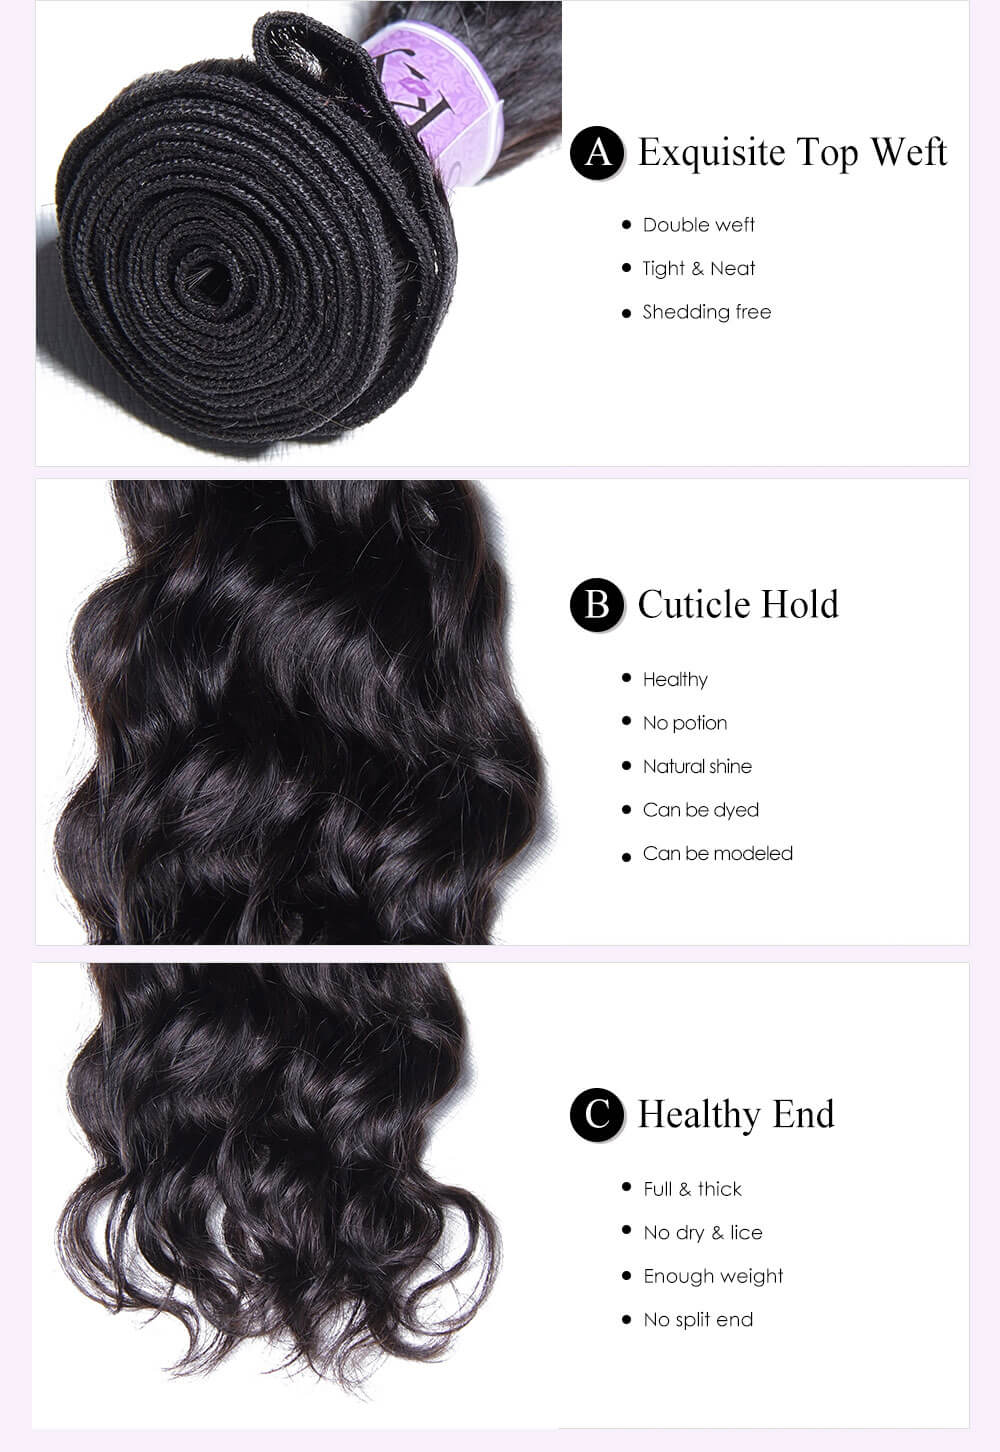 Unice kysiss Indian natural wave 3 bundles hair